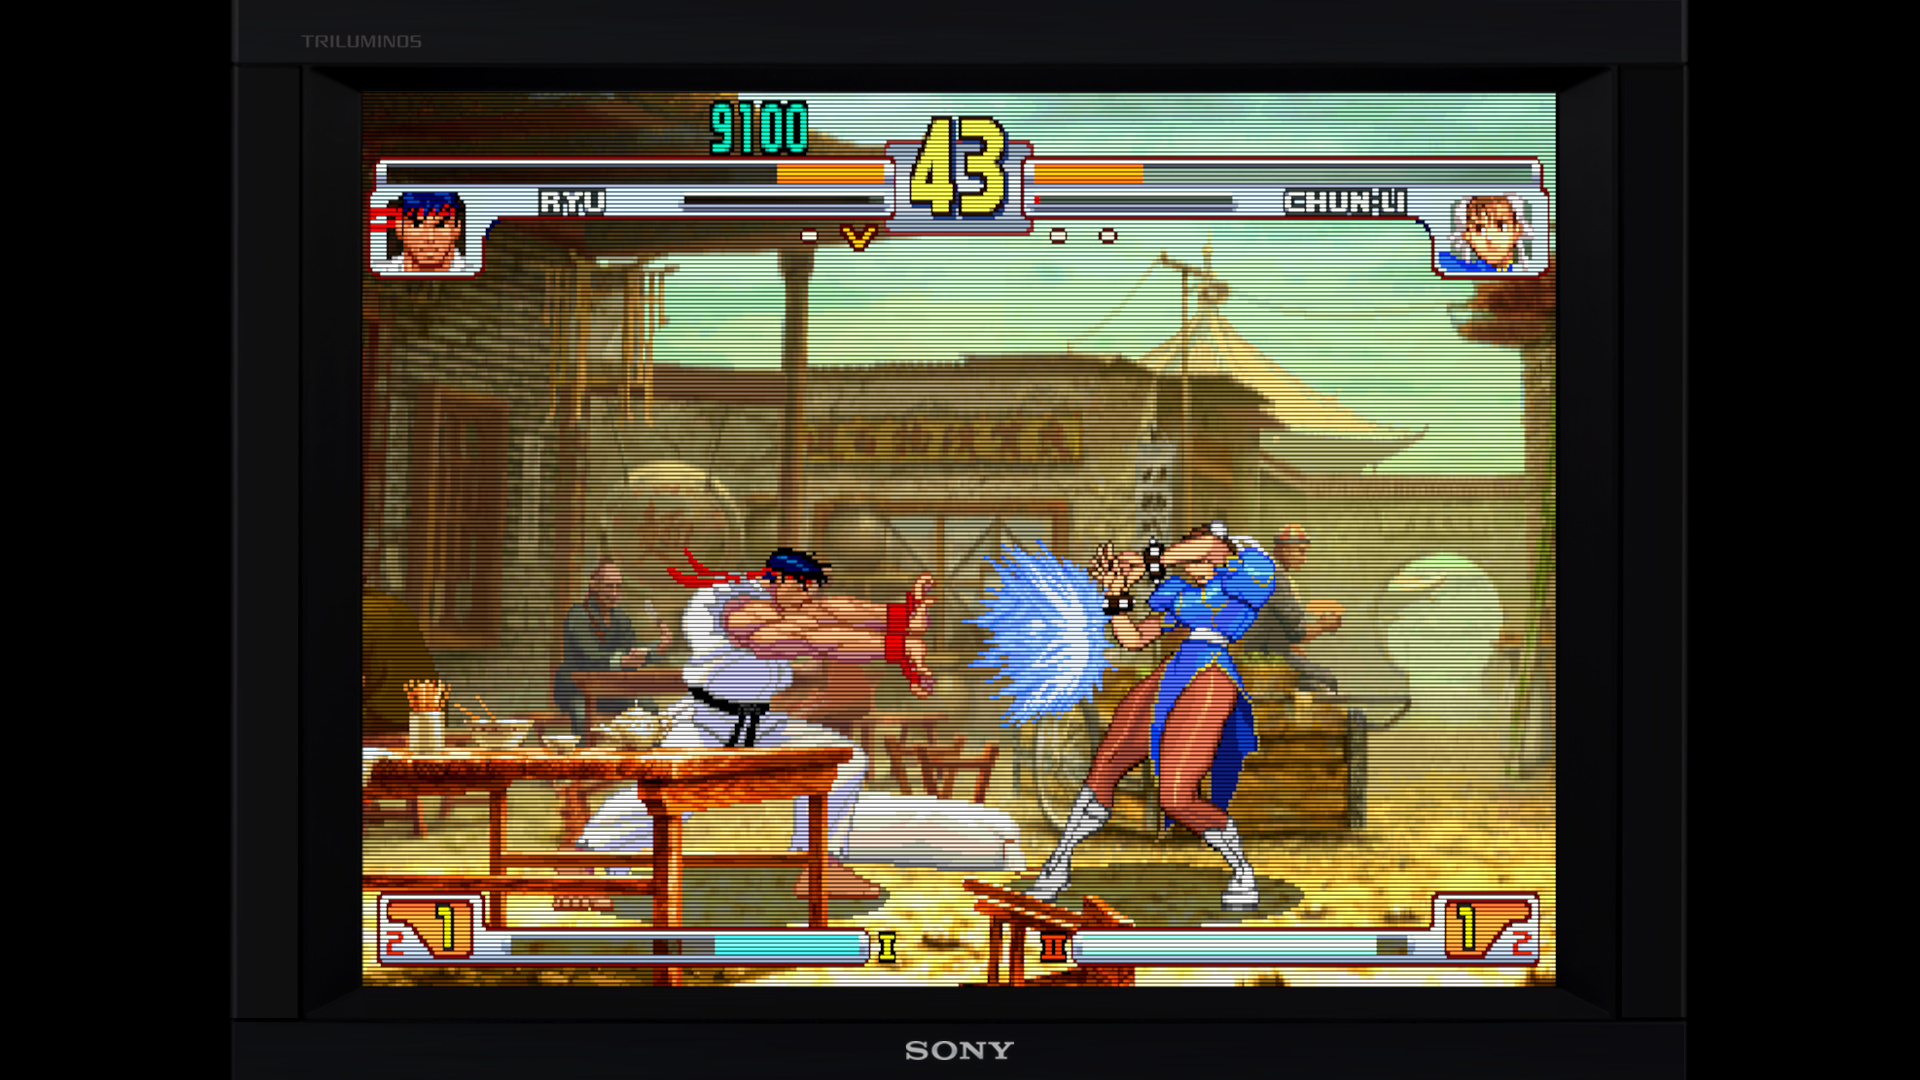 Reicast 240p and mame roms support - Cores - Libretro Forums